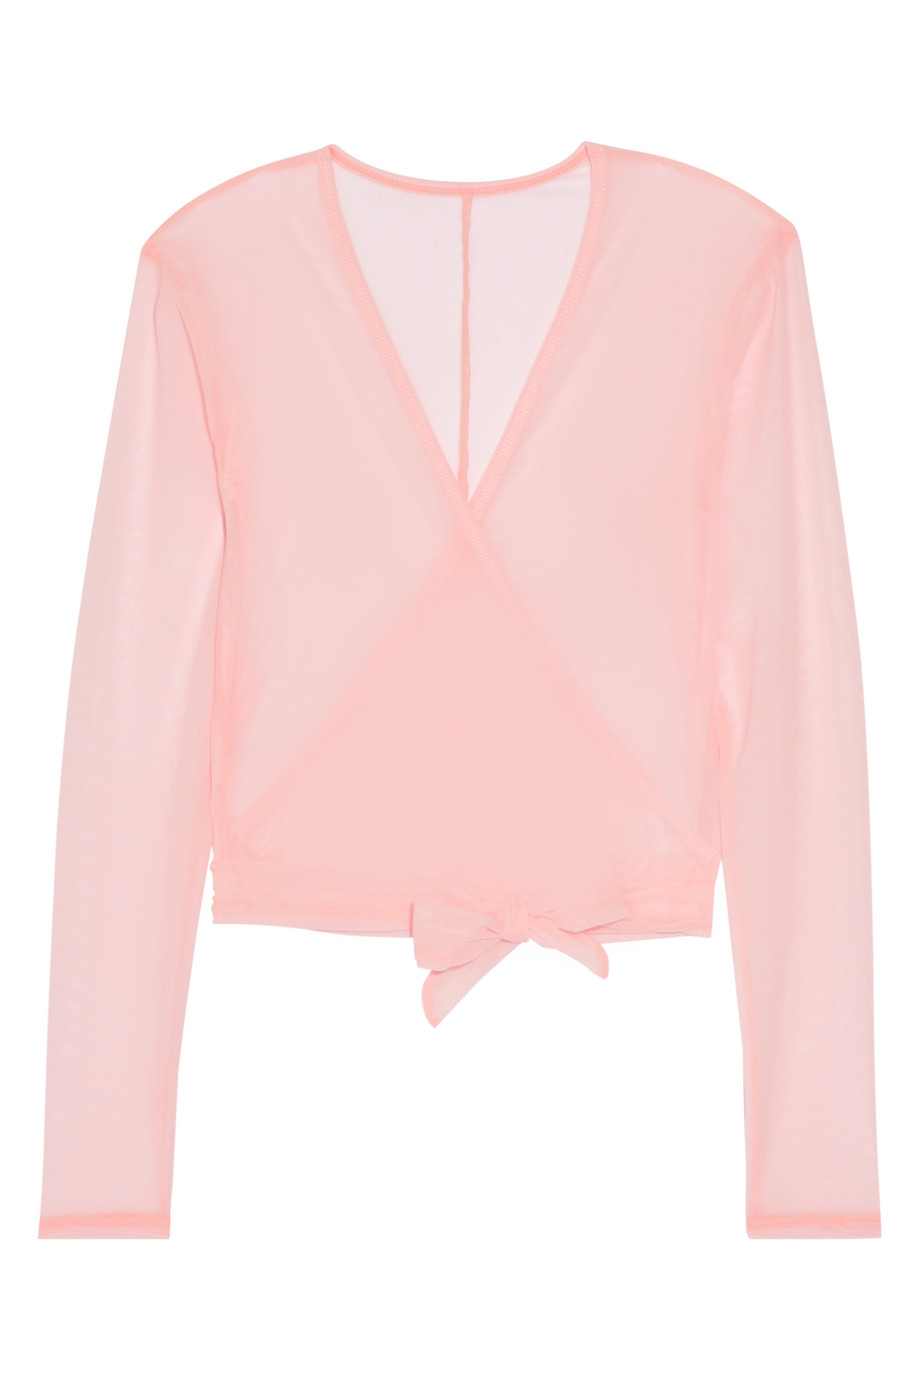 Mesh Wrap Top, Ballet Beautiful, Pastel Pink, Women's, Size: S